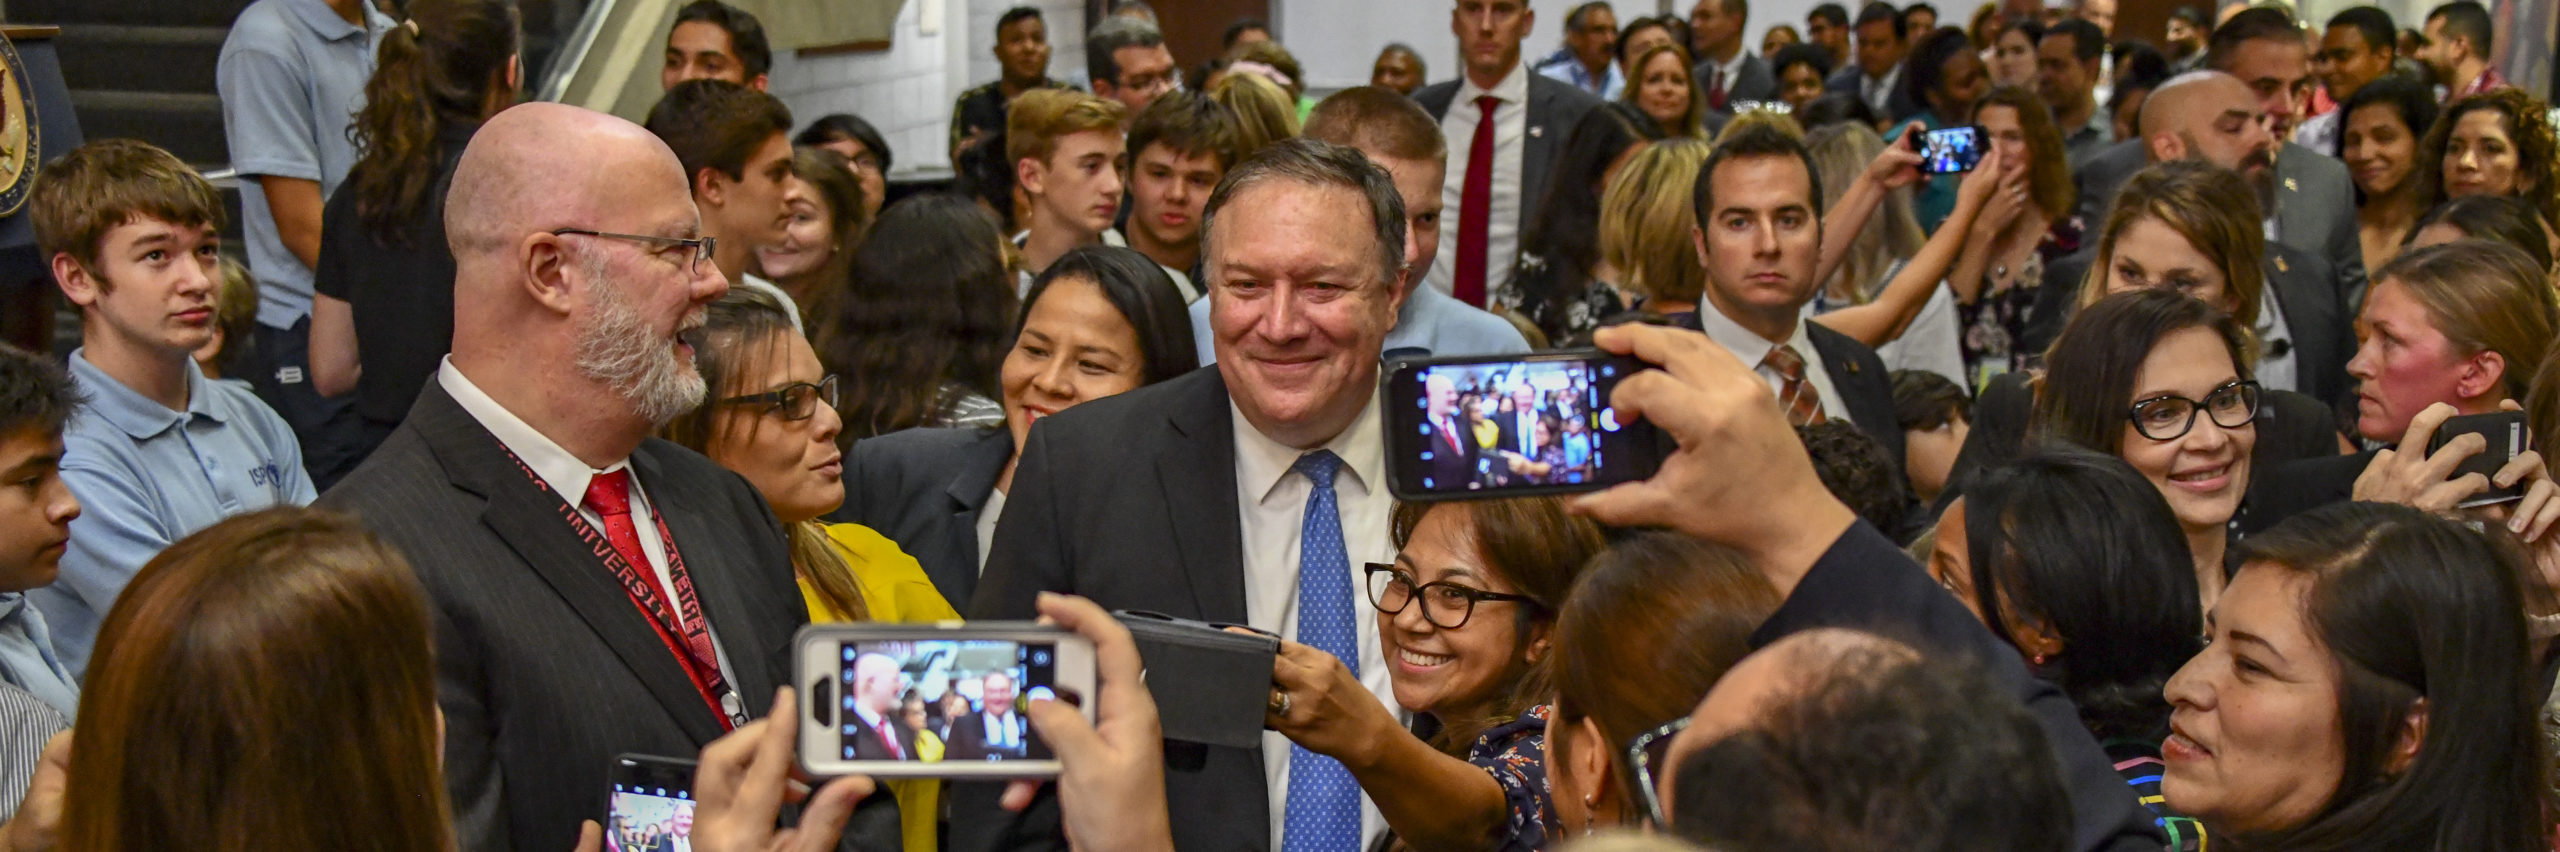 U.S. Secretary of State Michael R. Pompeo poses for photos with embassy staff at U.S. Panama in Panama City on October 18, 2018. [State Department photo by Ron Przysucha/ Public Domain]